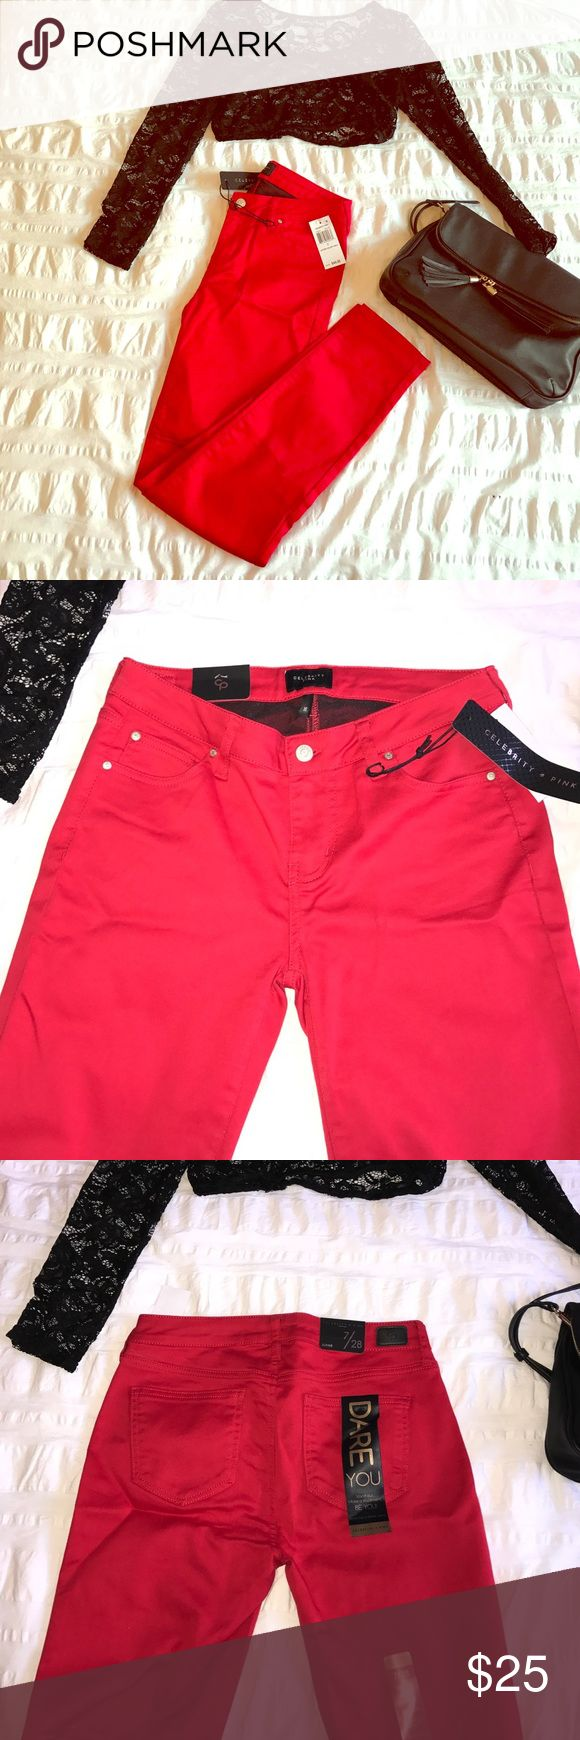 Tango Red skinny pants Tango Red skinny jean style pants. Super stretchy and comfortable. Size 7/28 Celebrity Pink Pants Skinny